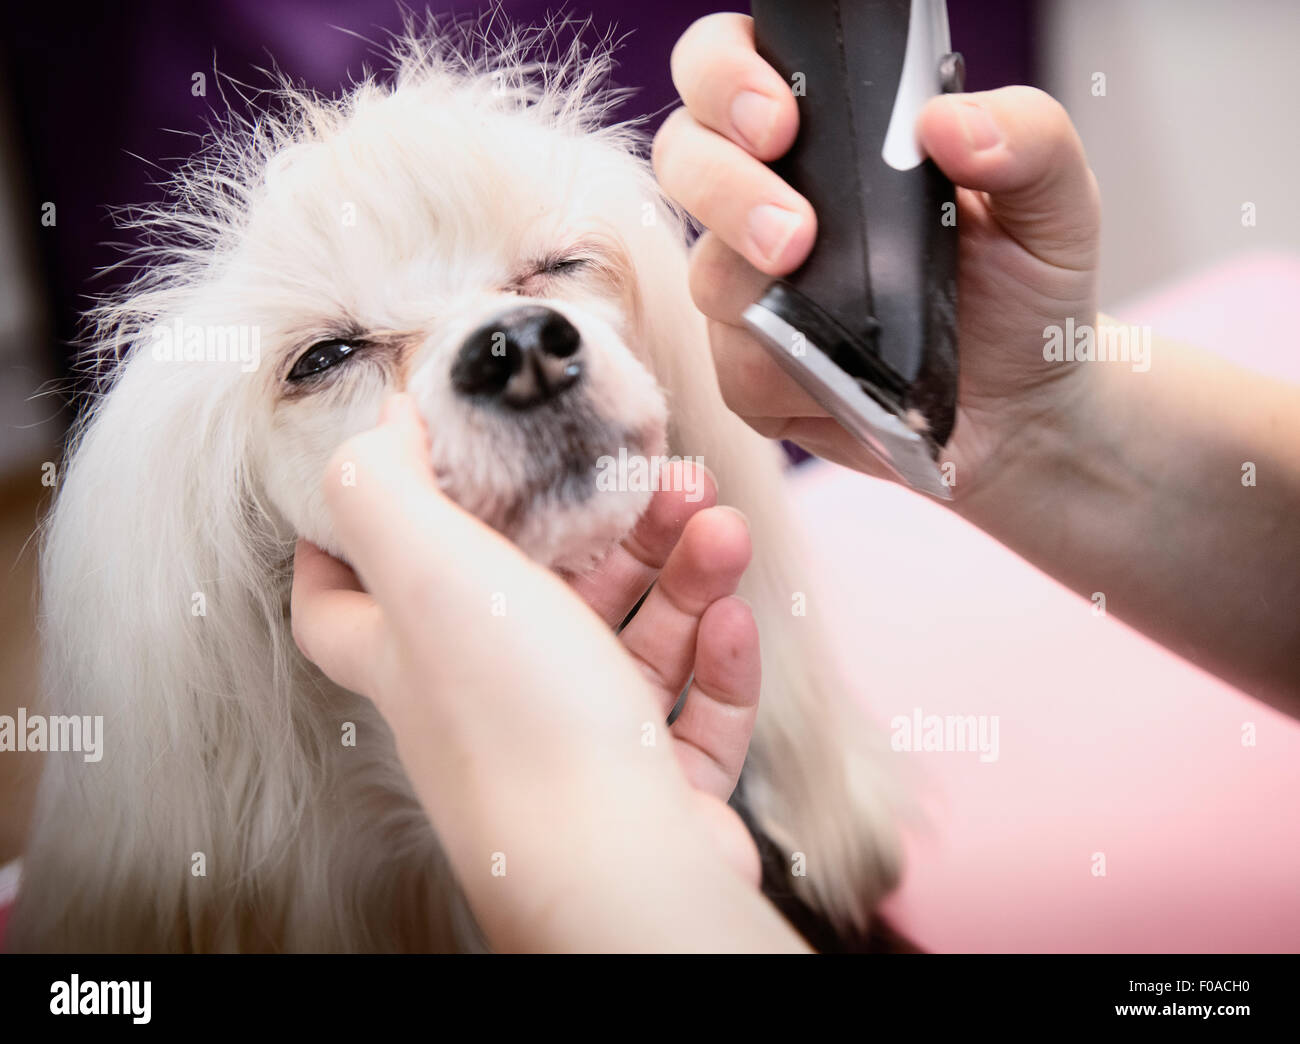 Dog being groomed in salon, close-up - Stock Image